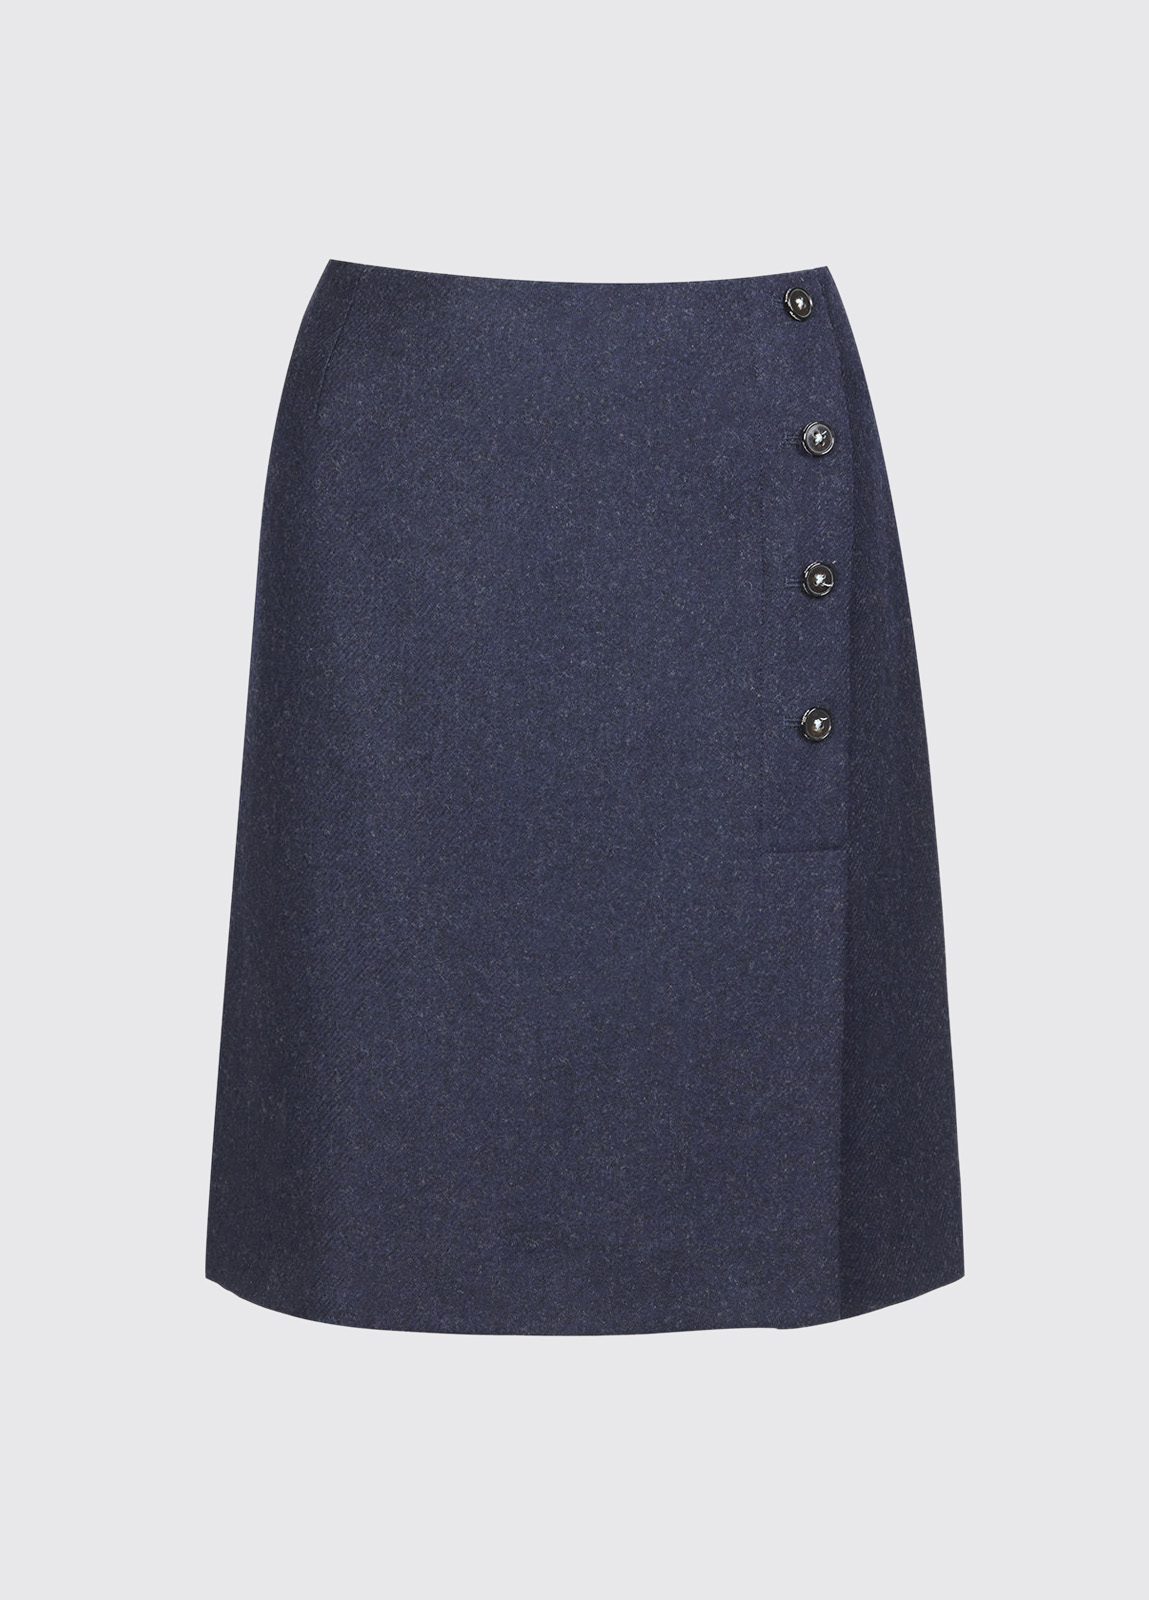 Marjoram Slim Tweed Skirt - Navy